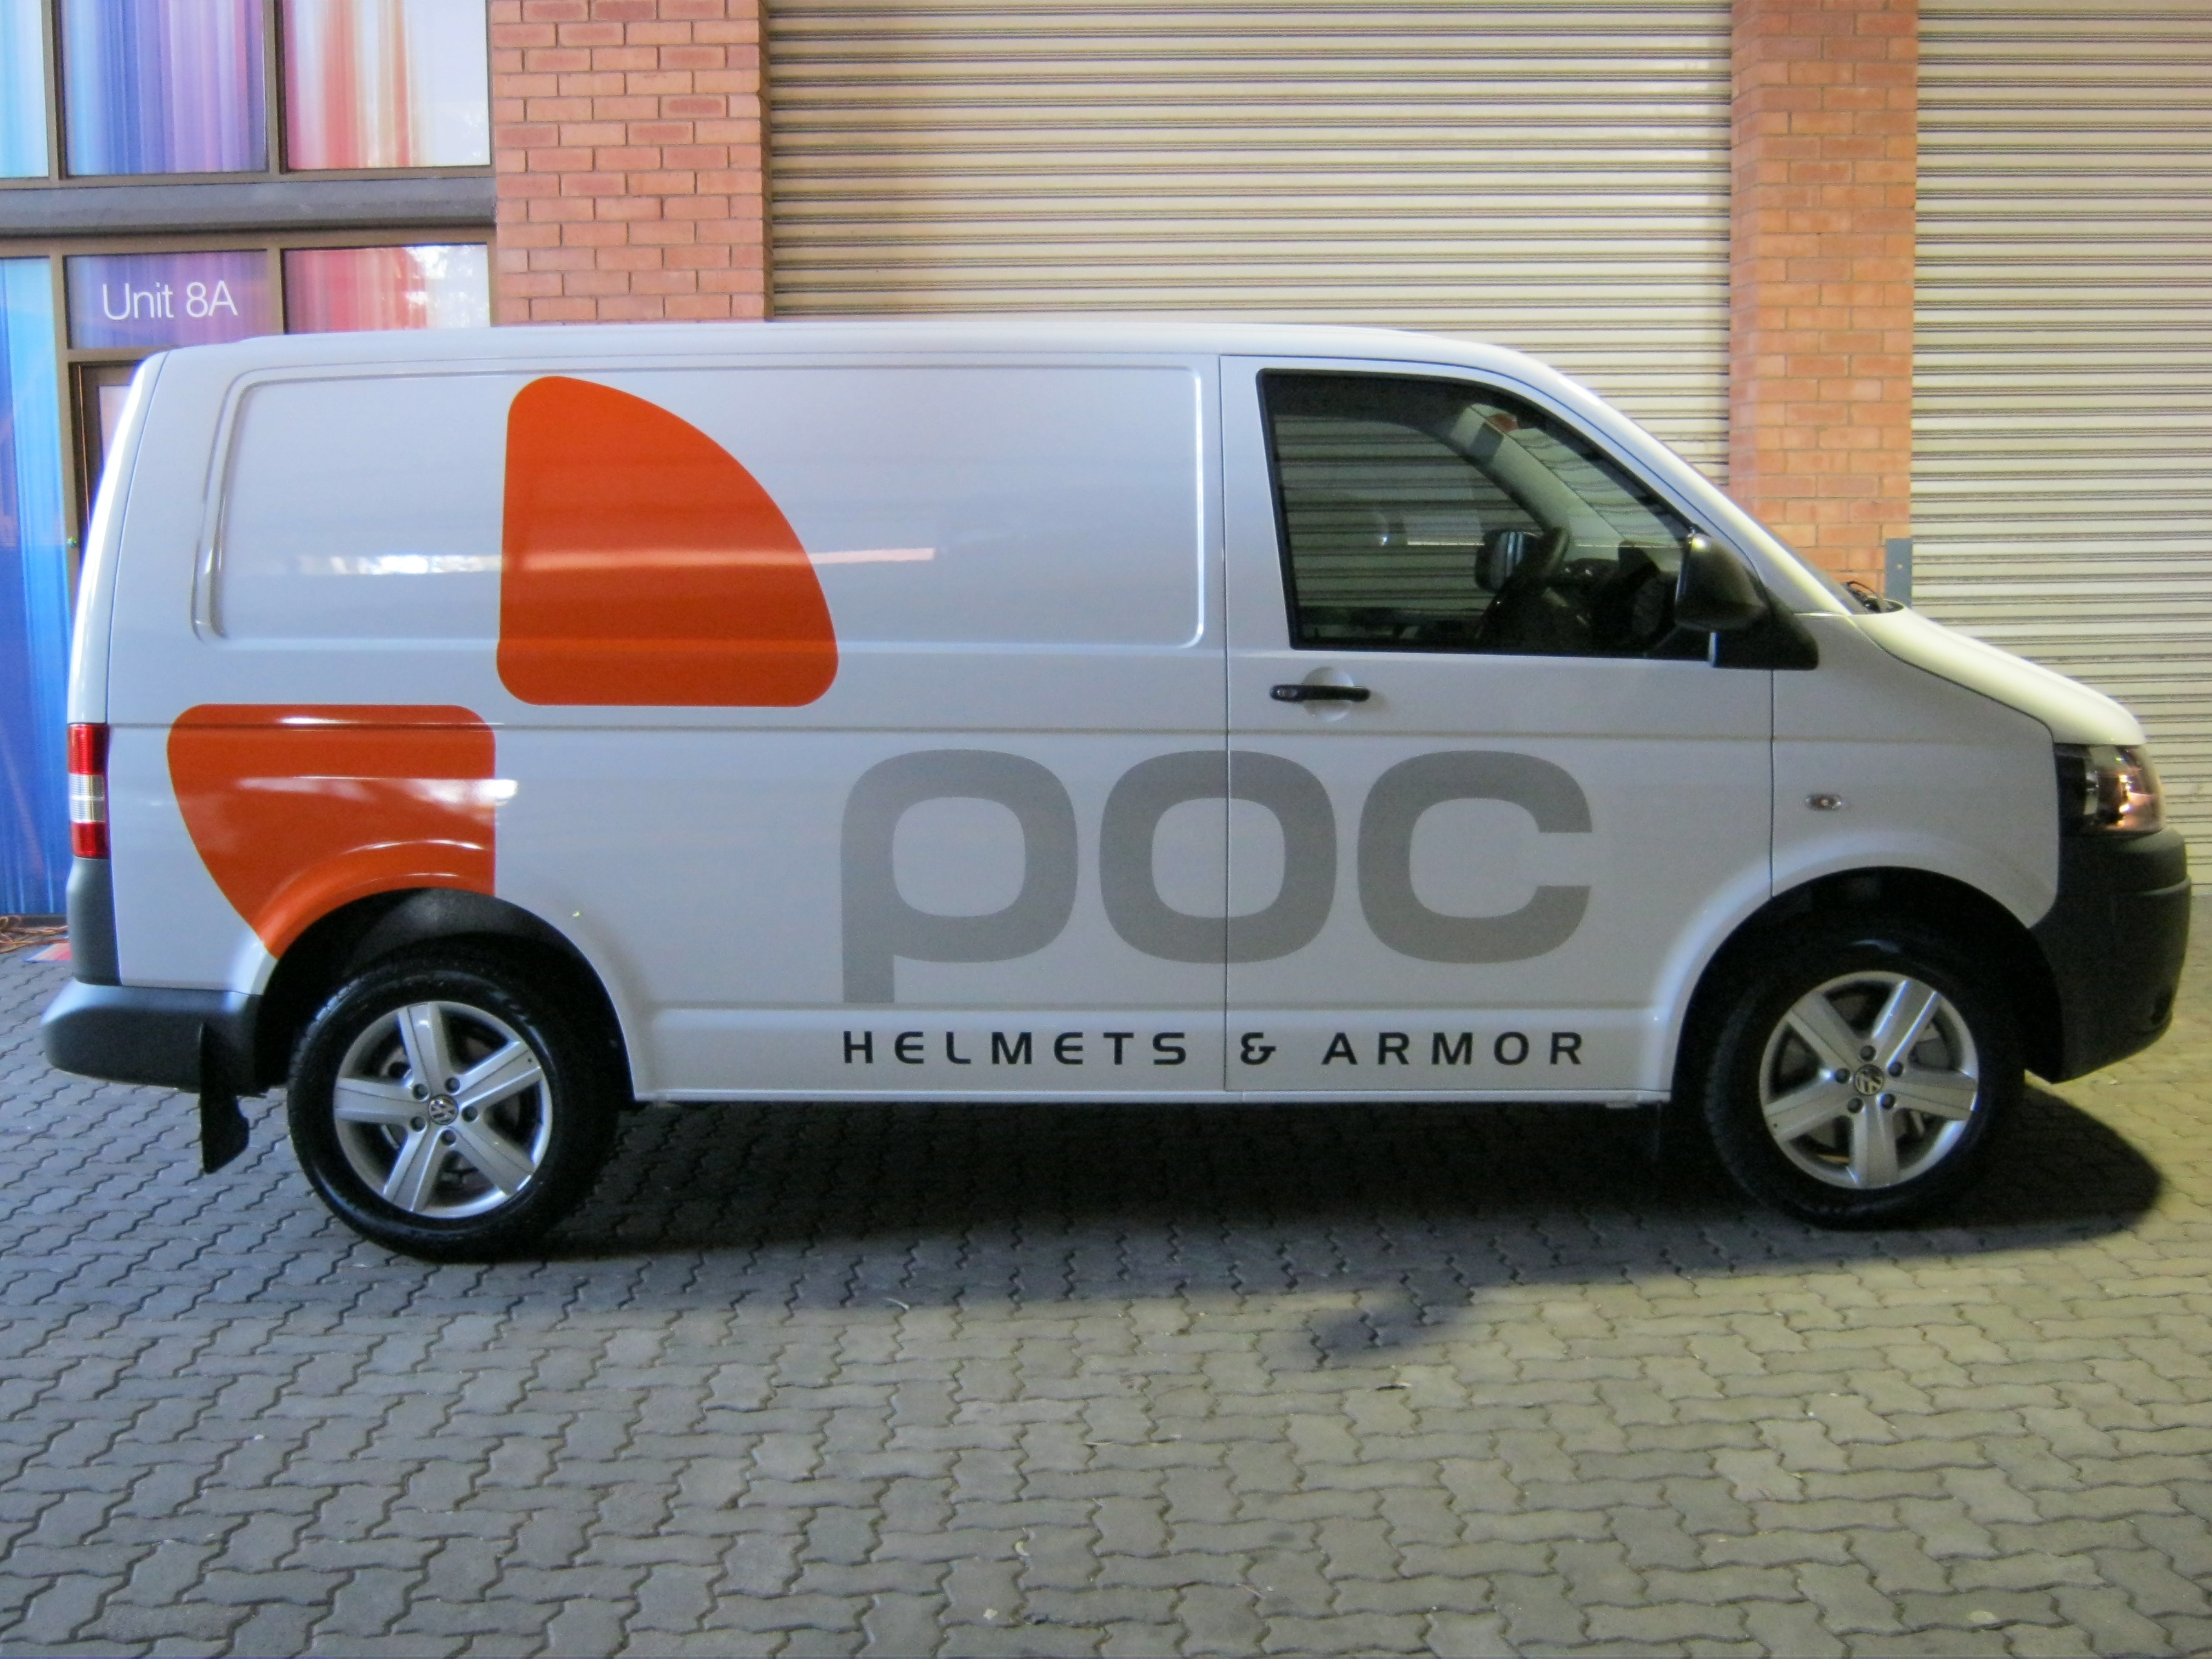 Jmac Graphics, Signage, Outdoor, Wrapping Car, Wrapping Van, POC